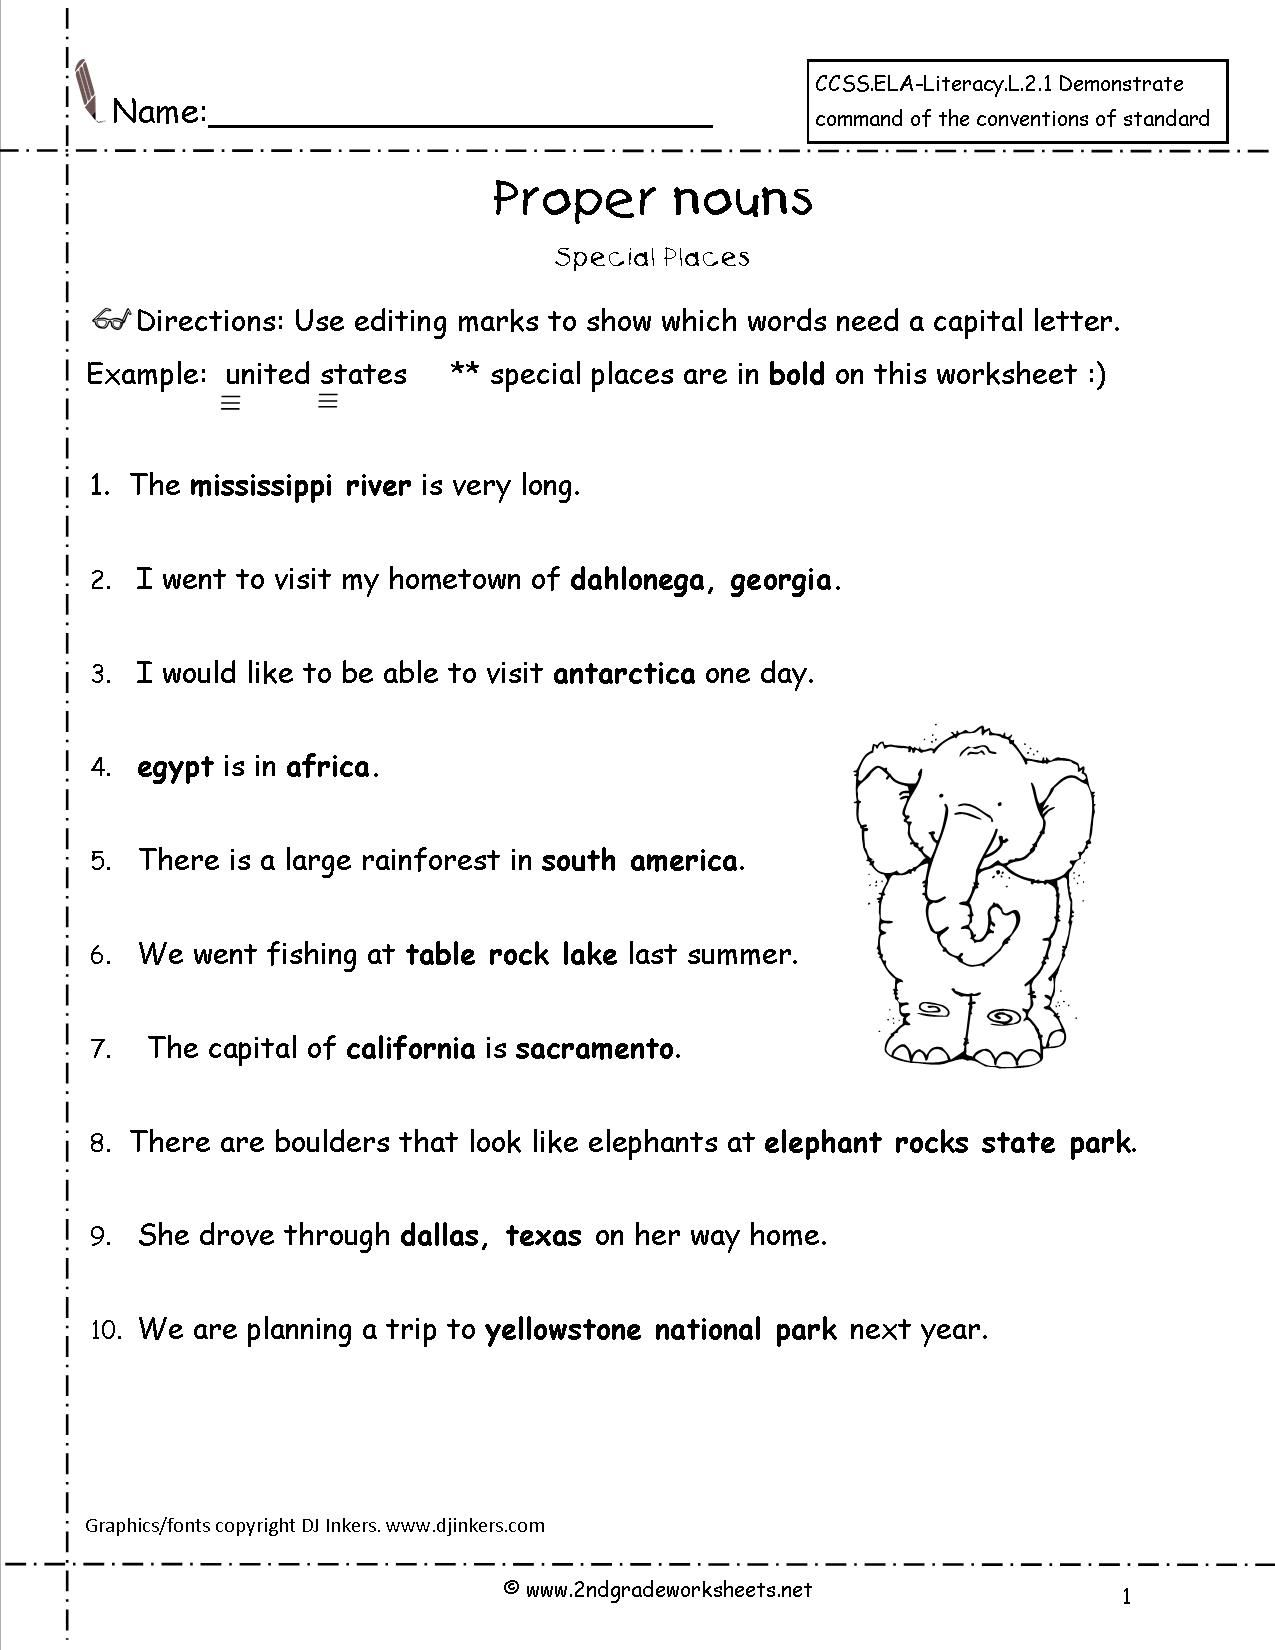 Worksheets Noun Worksheet proper nouns worksheet languageliteracy pinterest worksheet